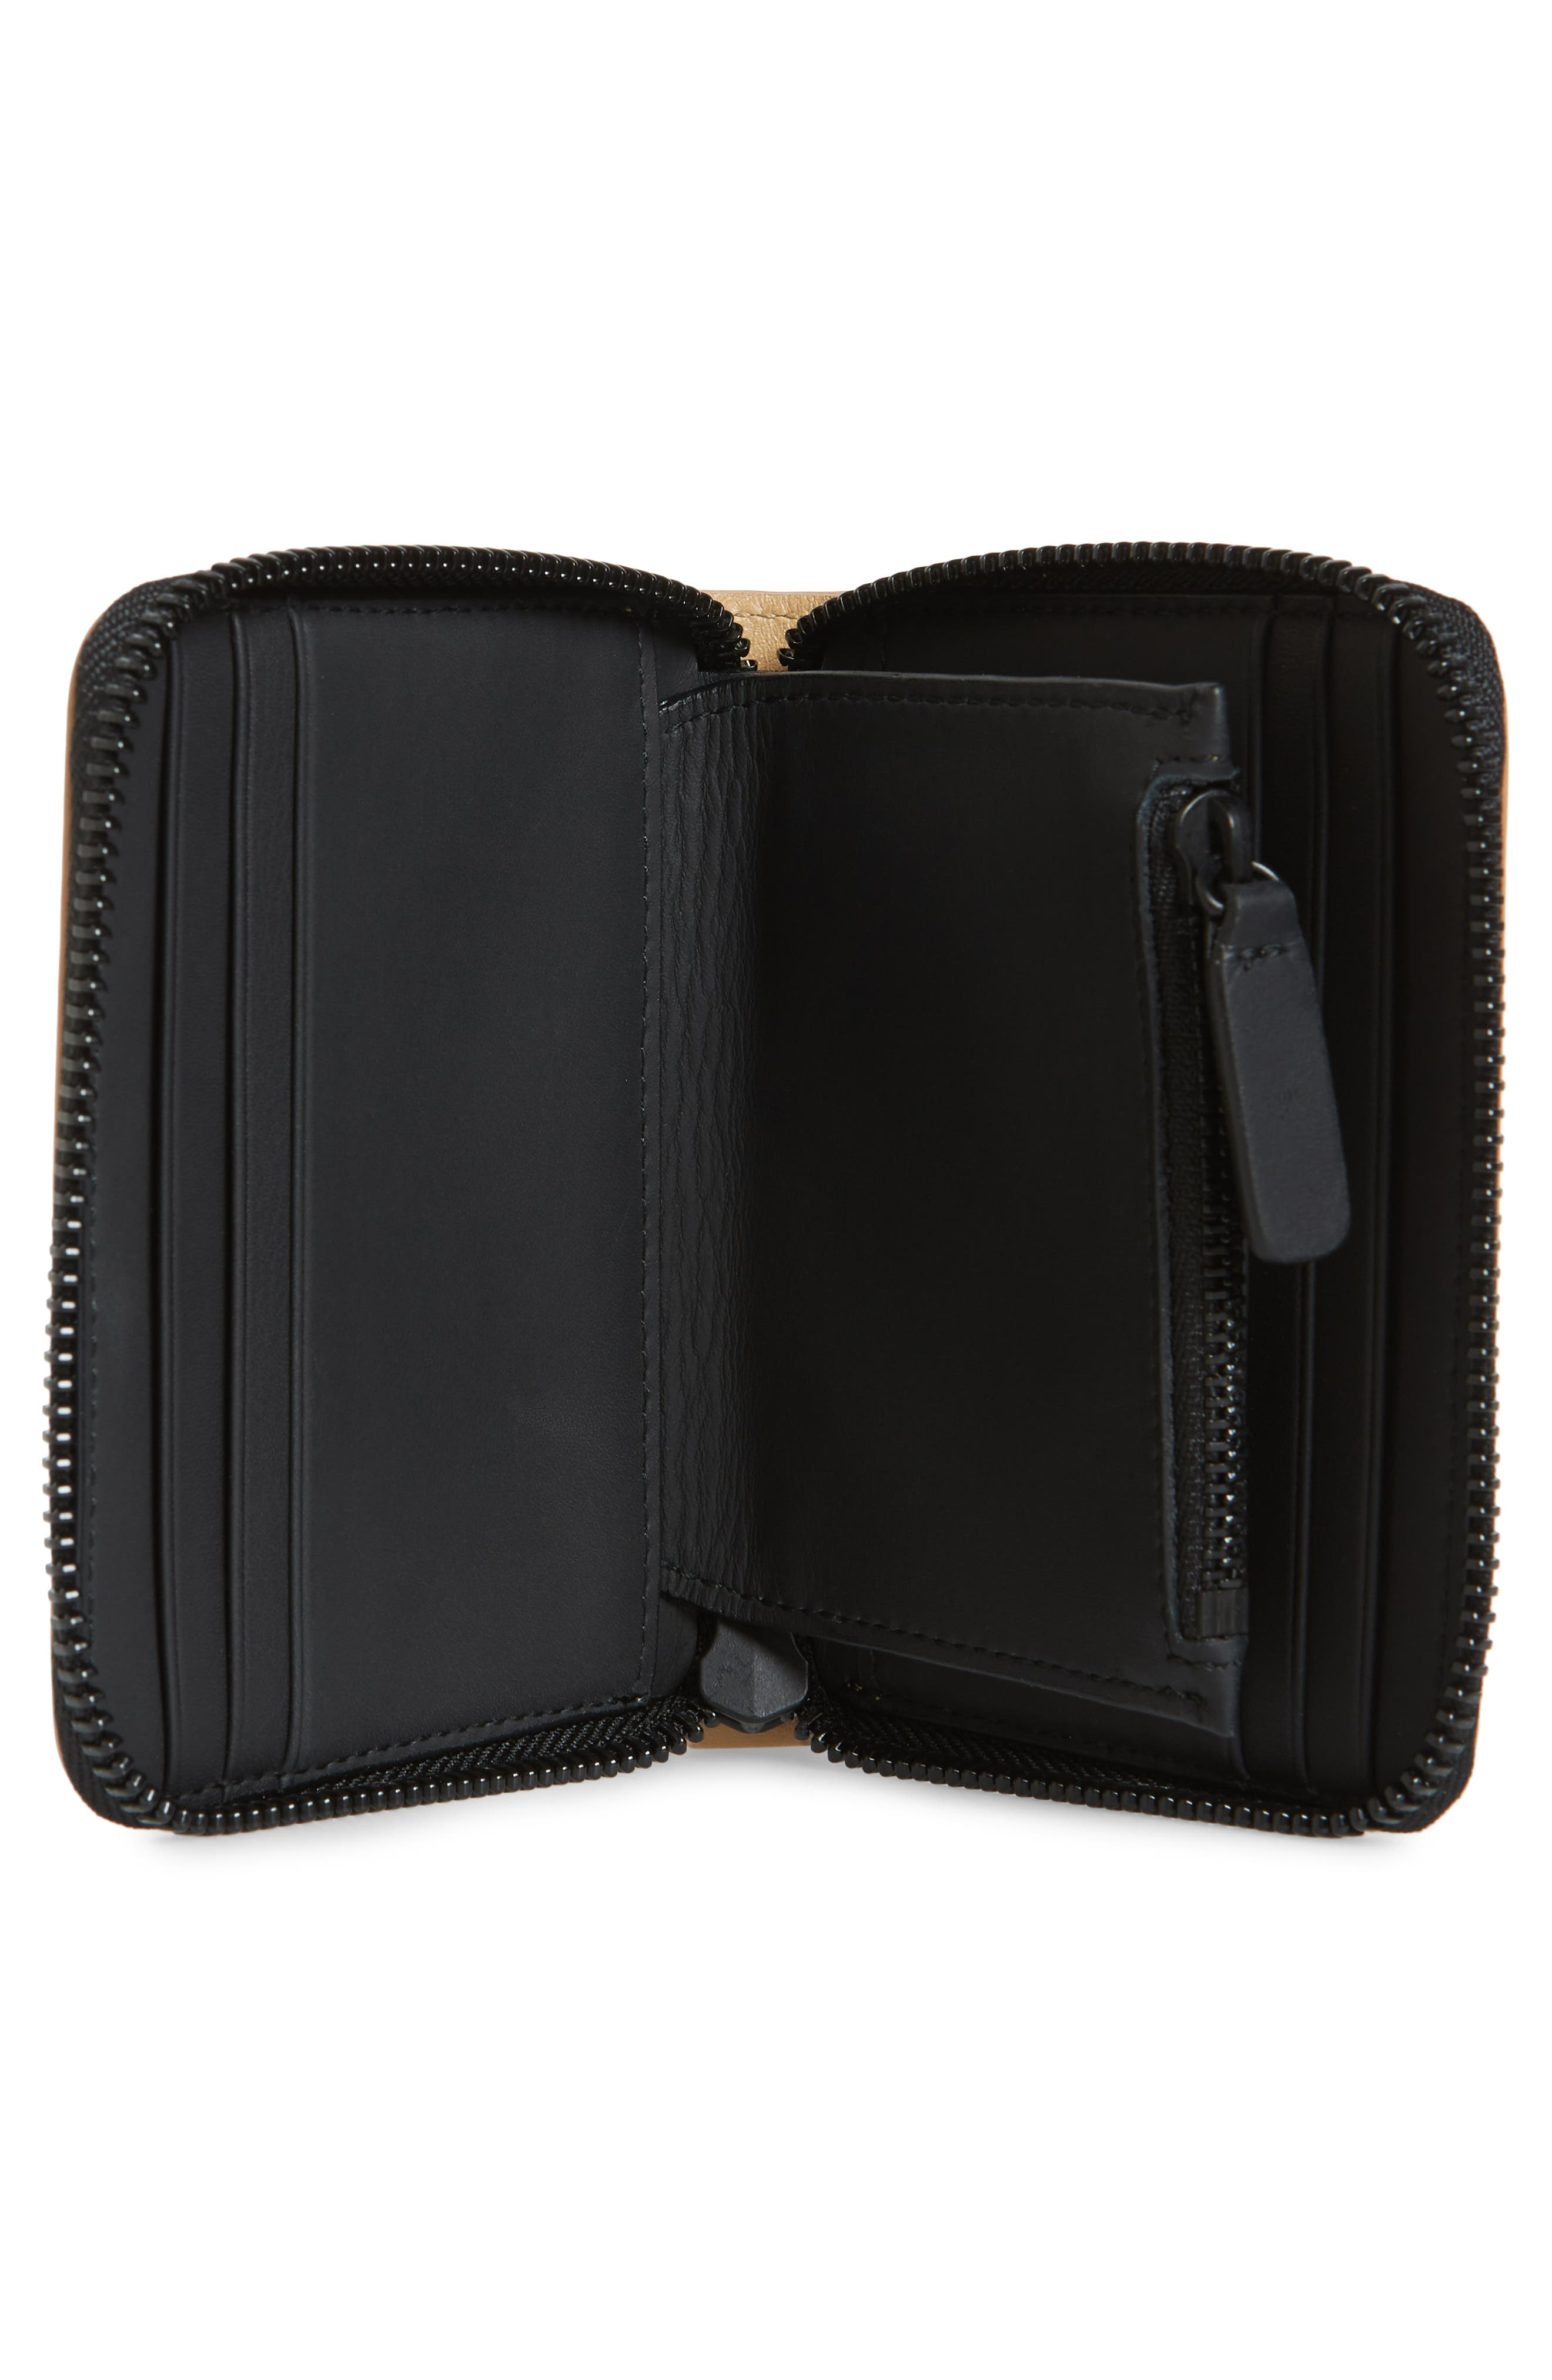 COMMON PROJECTS, Nappa Leather Zip Coin Case, Alternate thumbnail 2, color, TAN